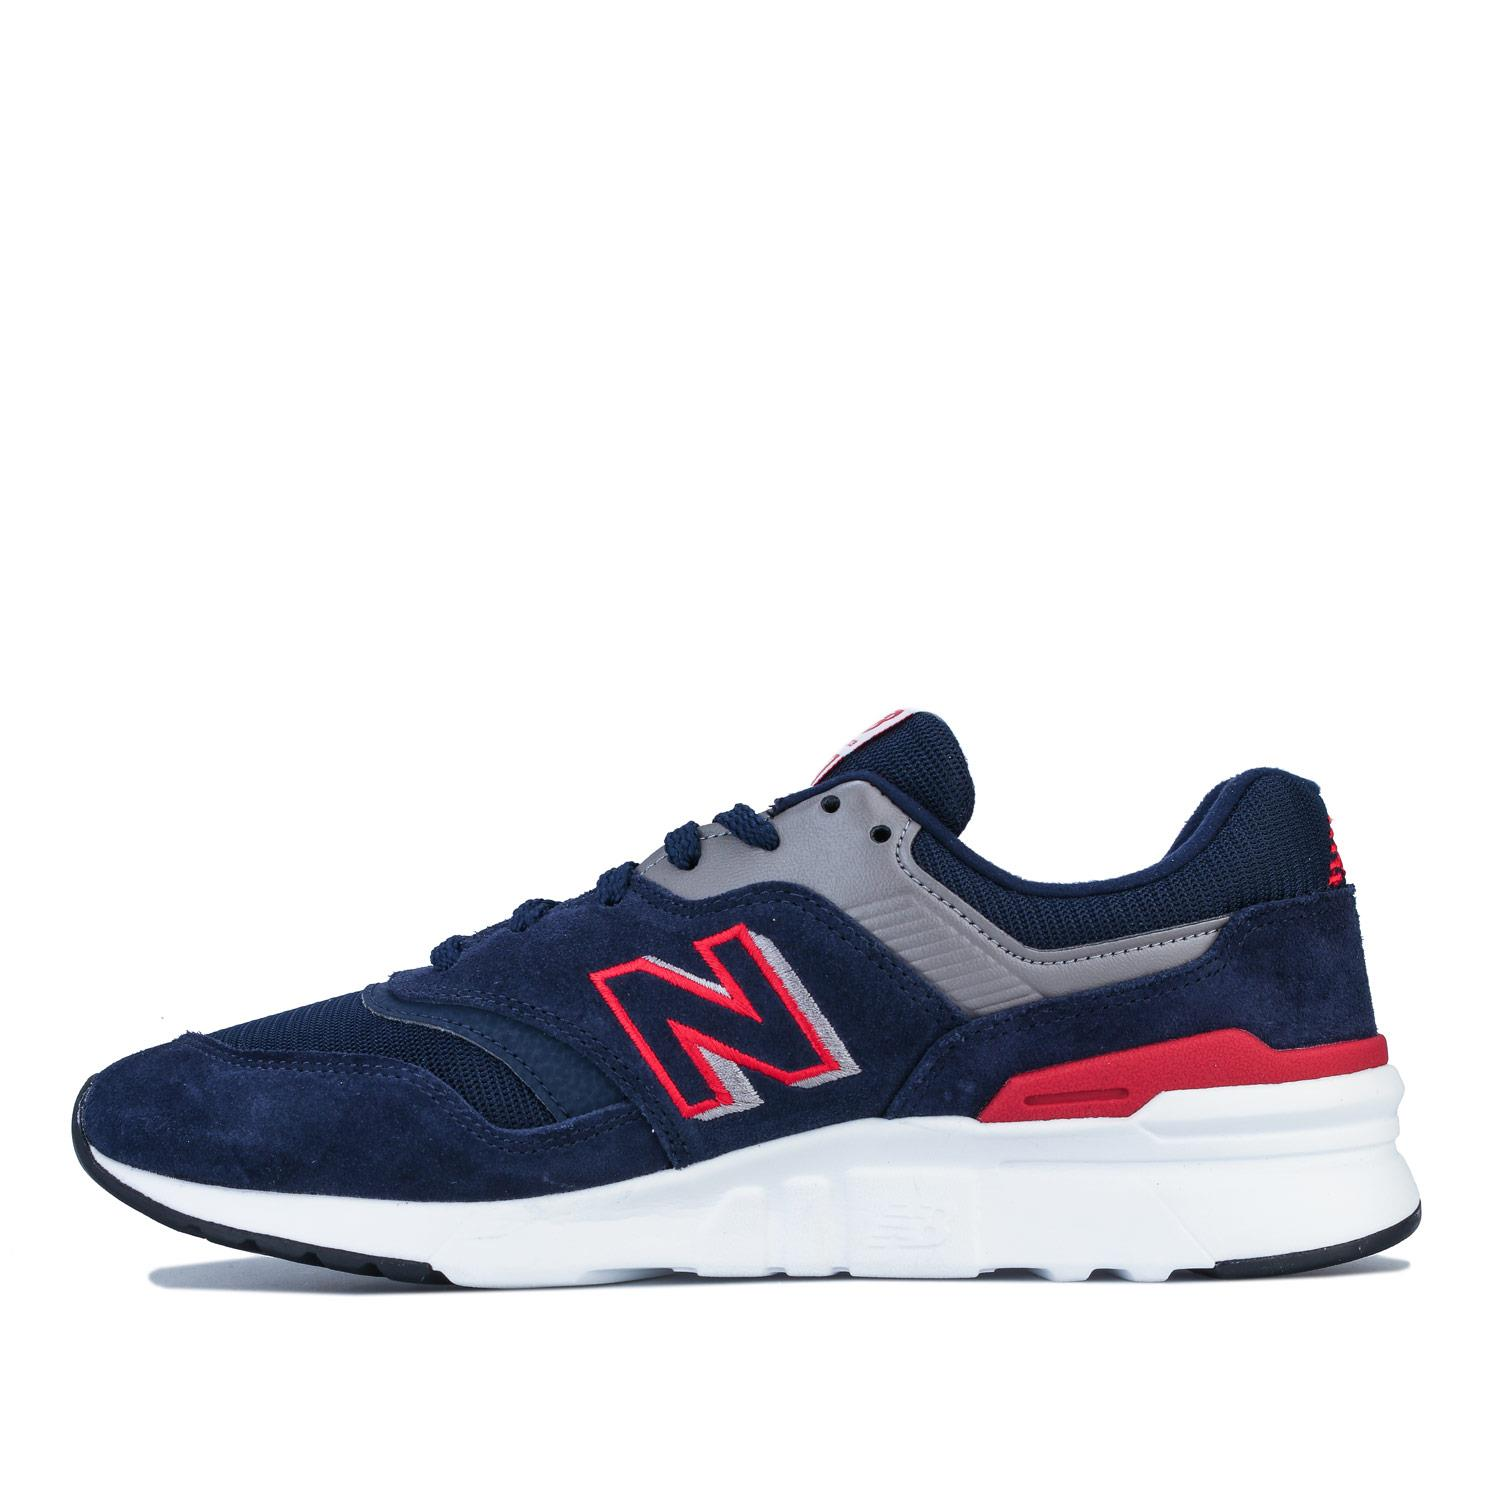 Mens-New-Balance-997H-Lace-up-Cushioned-Trainers-in-Navy-Blue-and-Black thumbnail 7